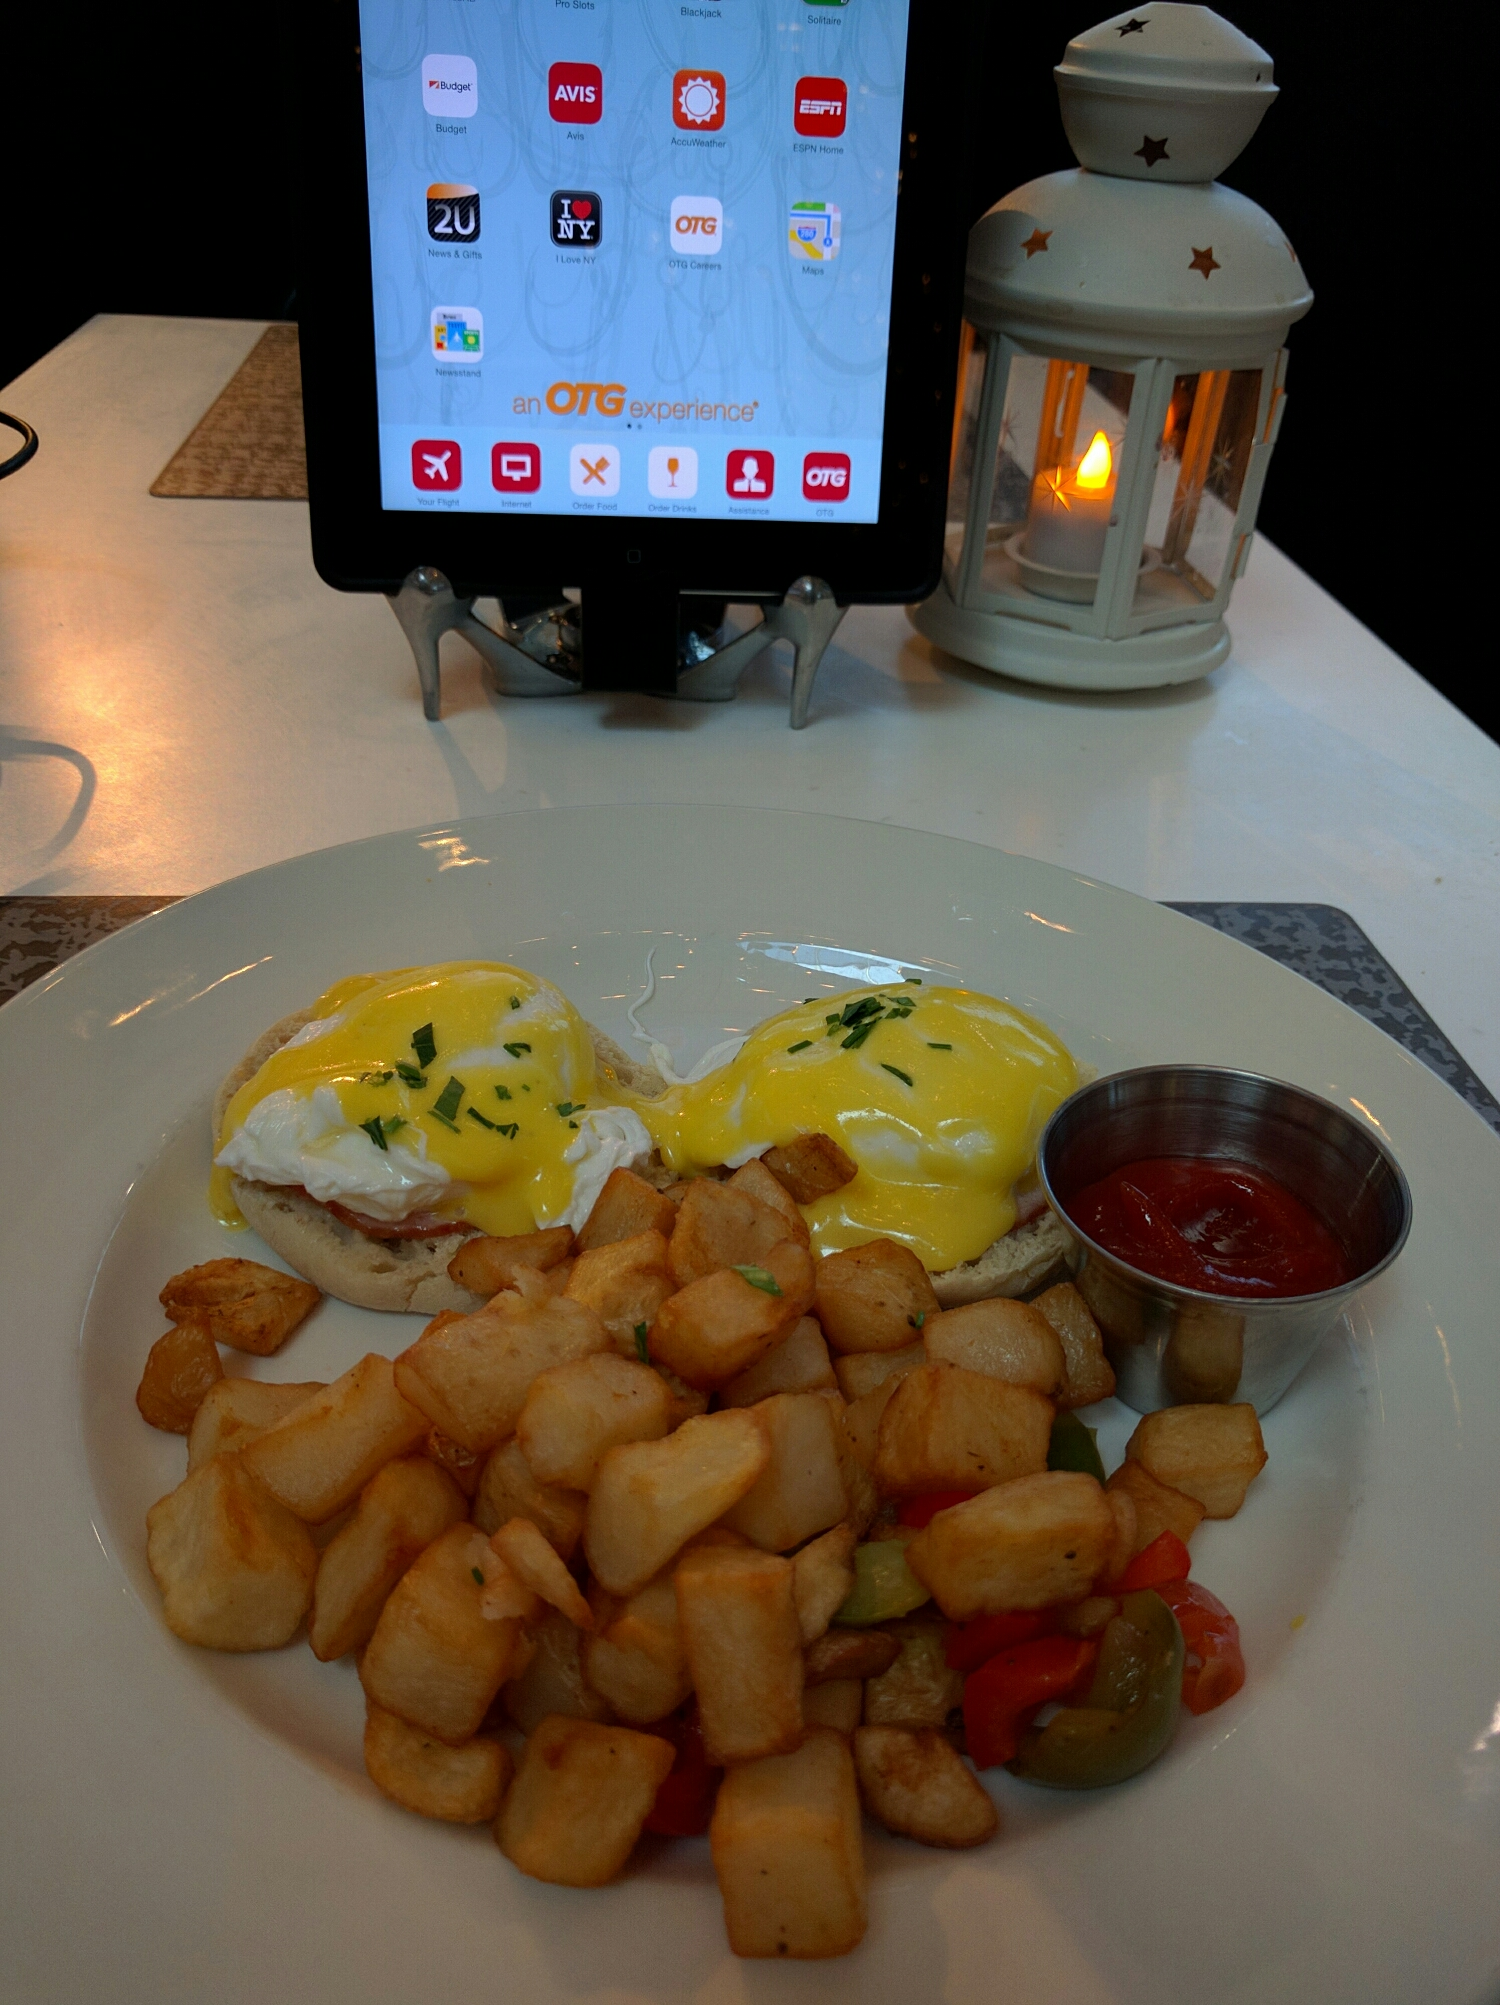 Order and pay on table mounted iPad - Laguardia Airport, NYC (Photo by Rob Schertzer)